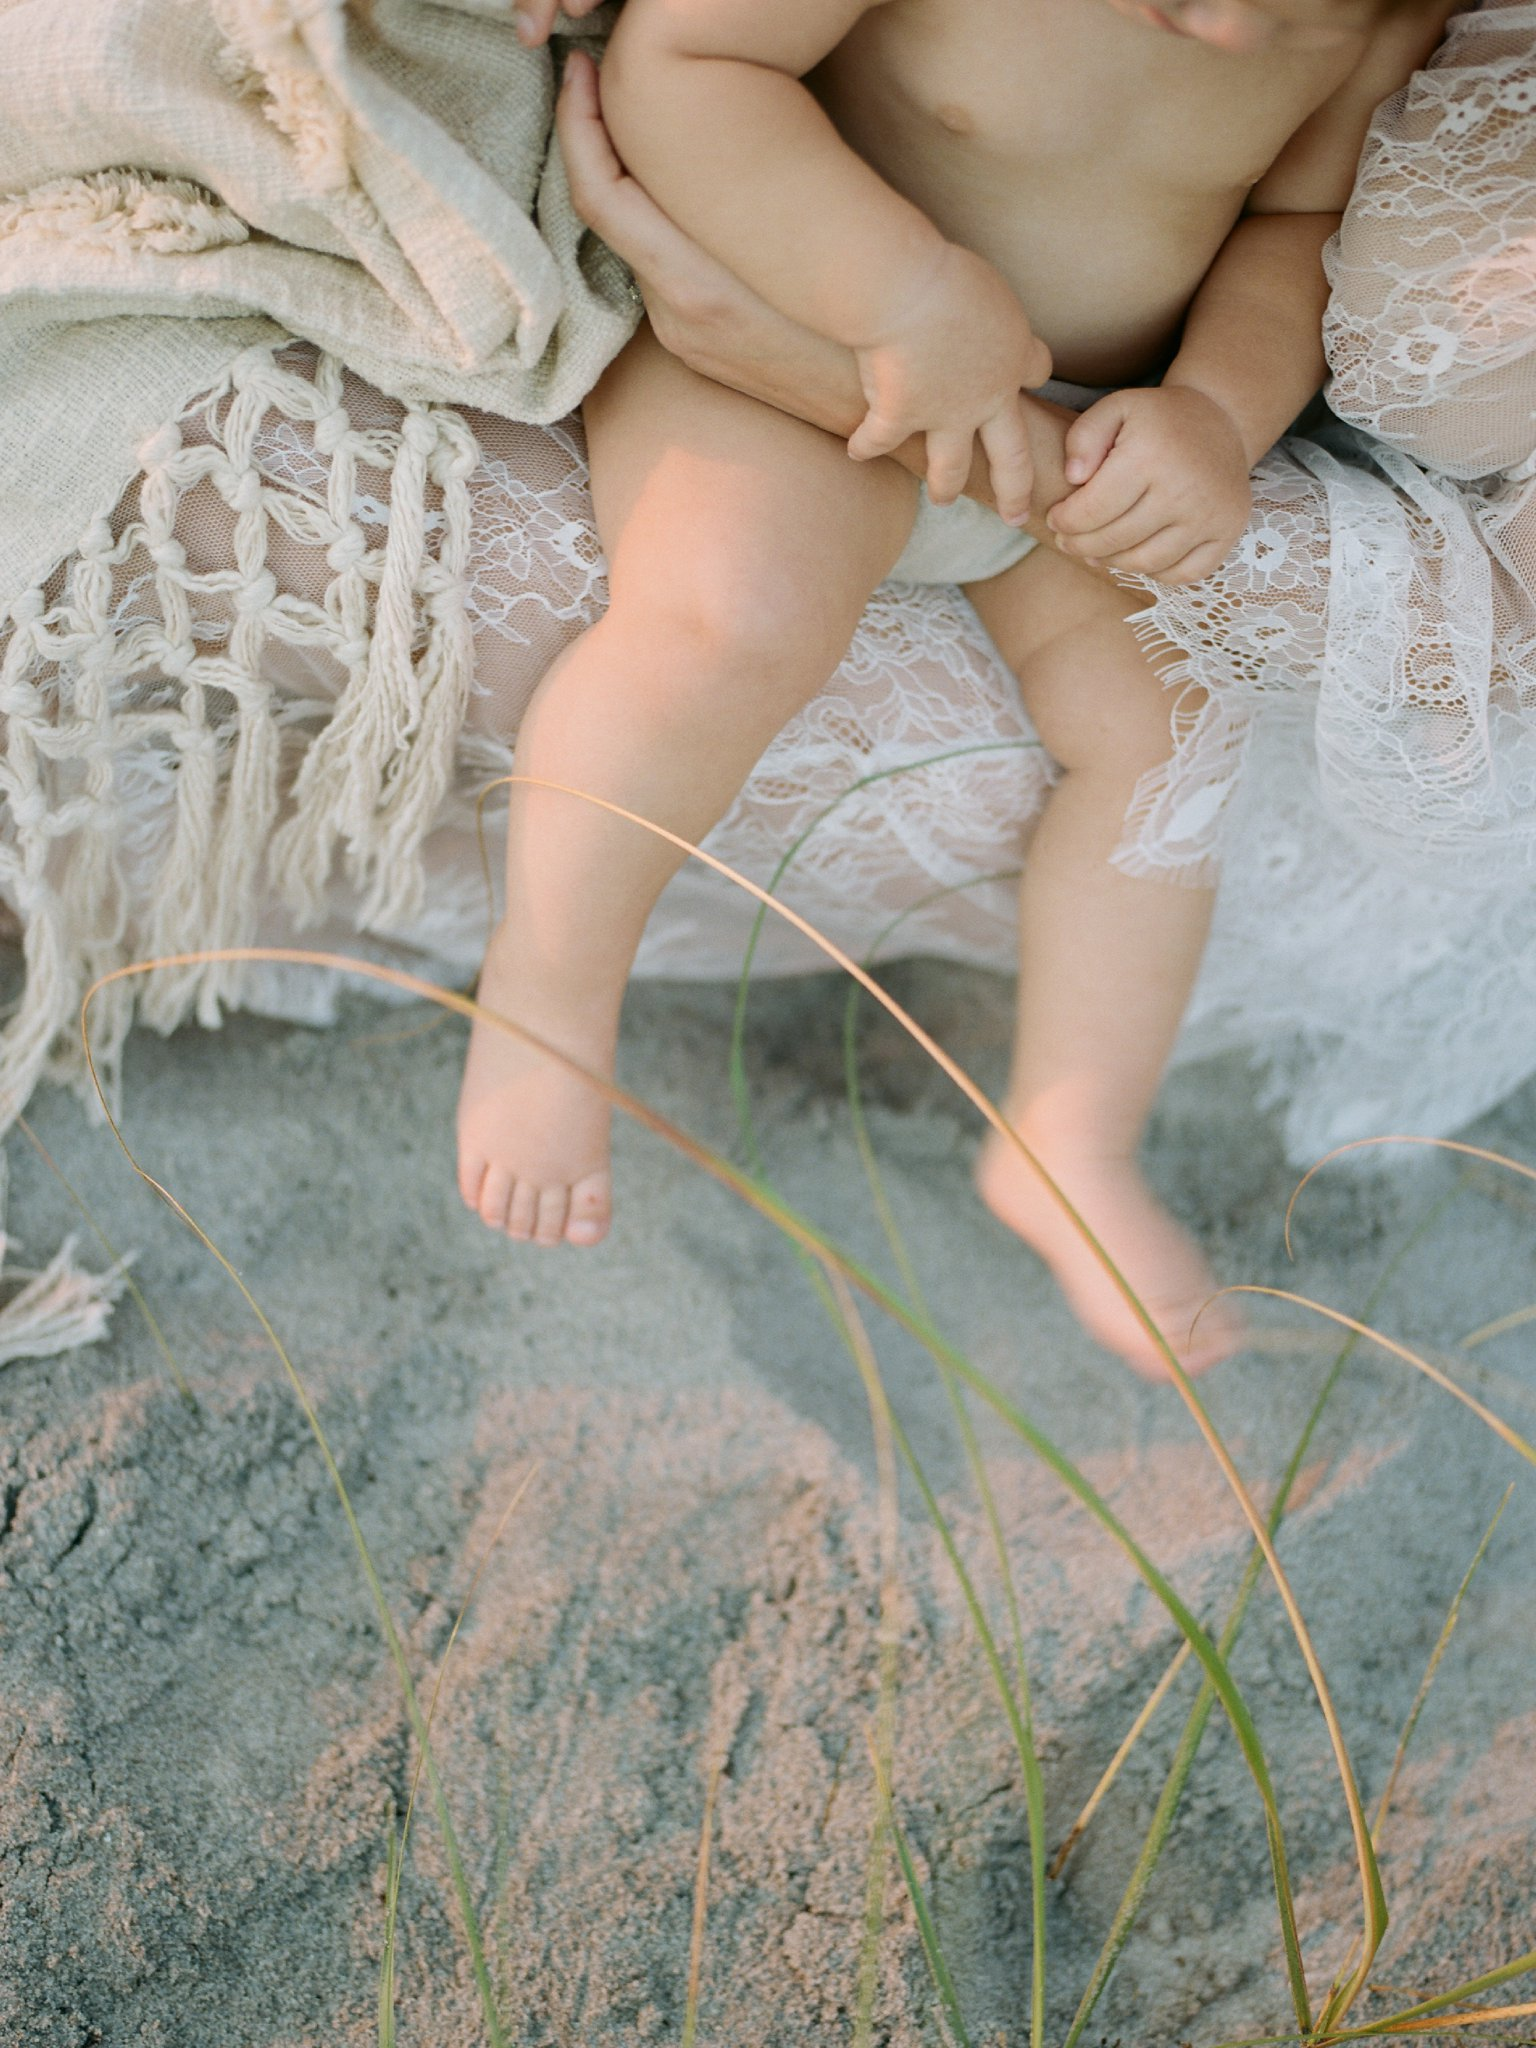 boca raton family photographer boca raton photographer shannon griffin photography_0025.jpg